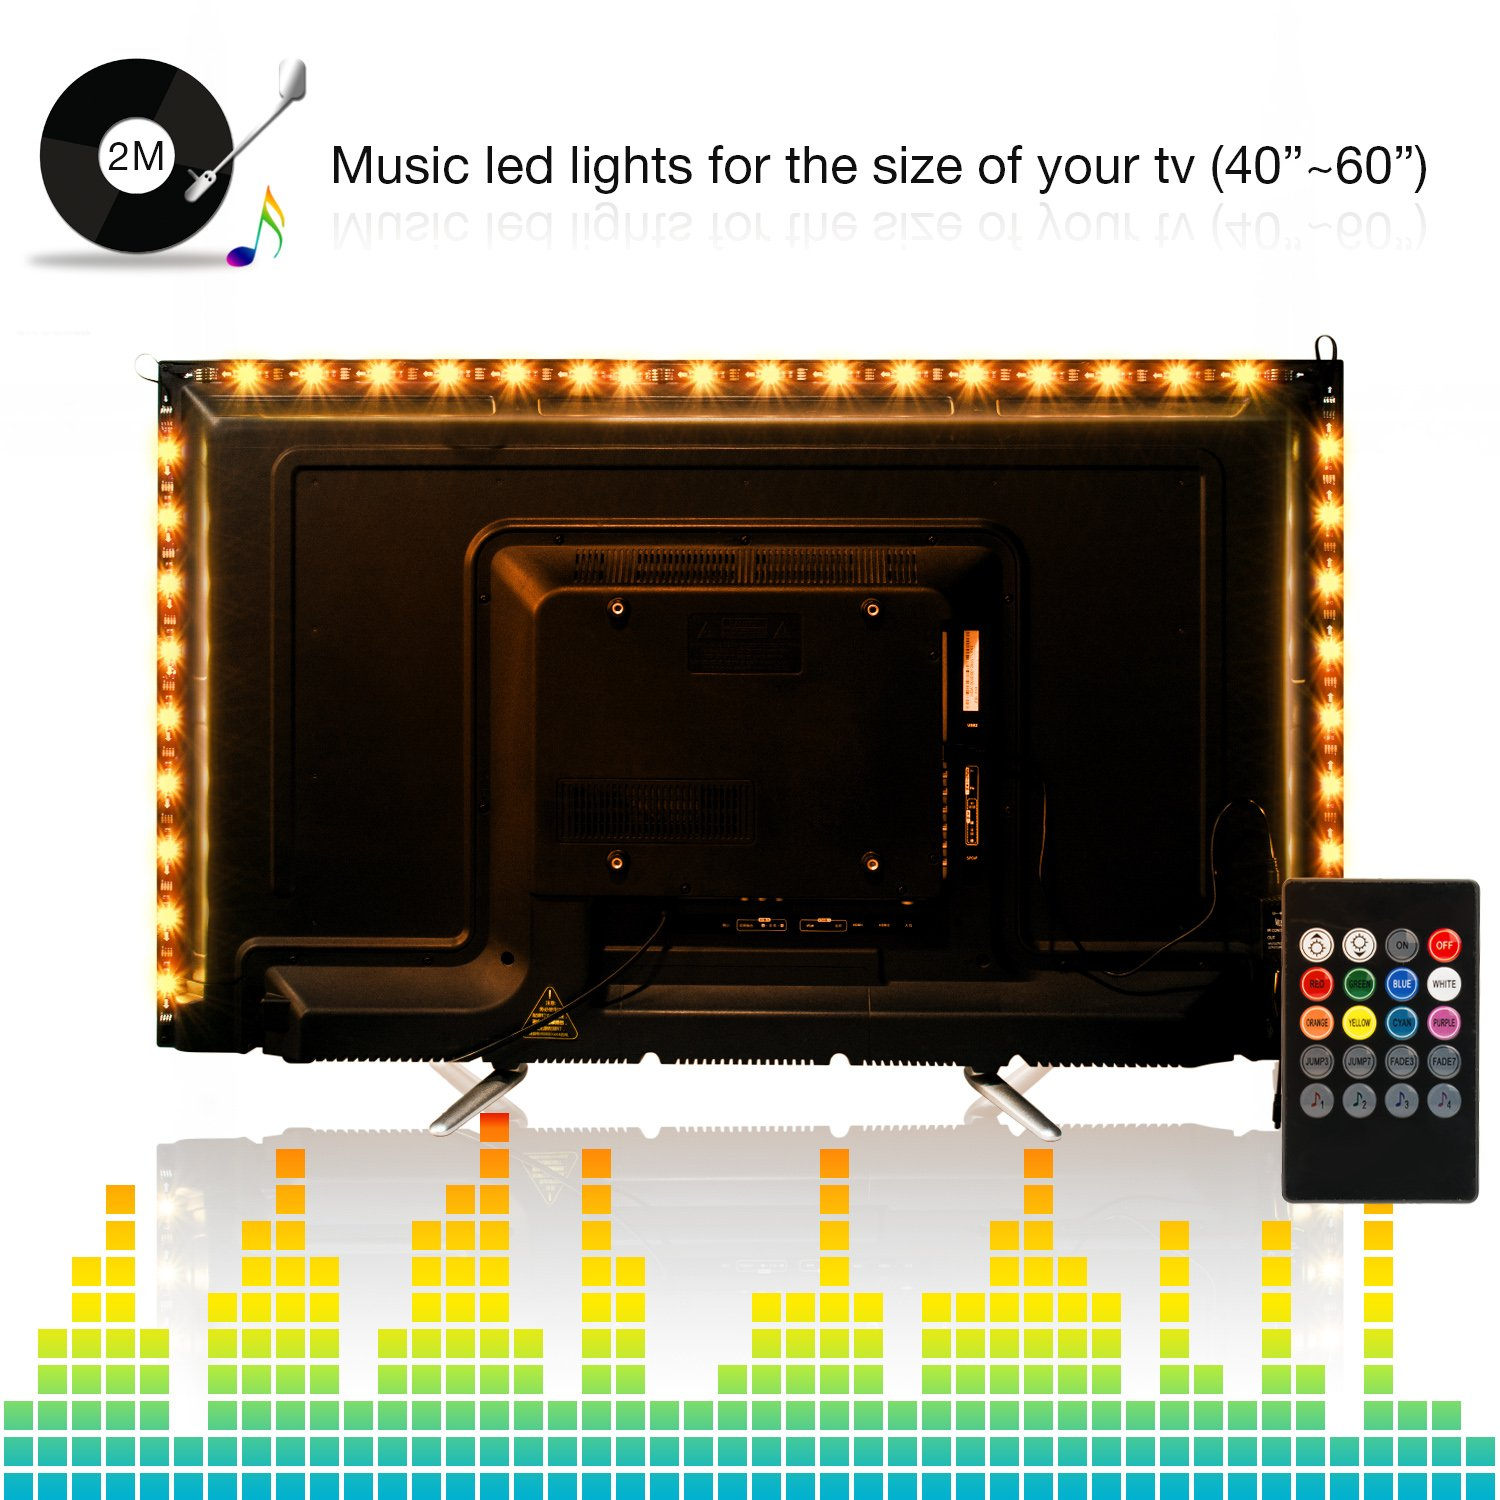 Led Light Strips,ViLSOM 2M/6.56Ft SMD 5050 USB Powered Led tv Backlight Sync to Music with 8 Colors,4 Flash Modes and 4 Music Modes for 40-60 inch HDTV,TV Backlight (4 x 50CM/1.64Ft led Strips)